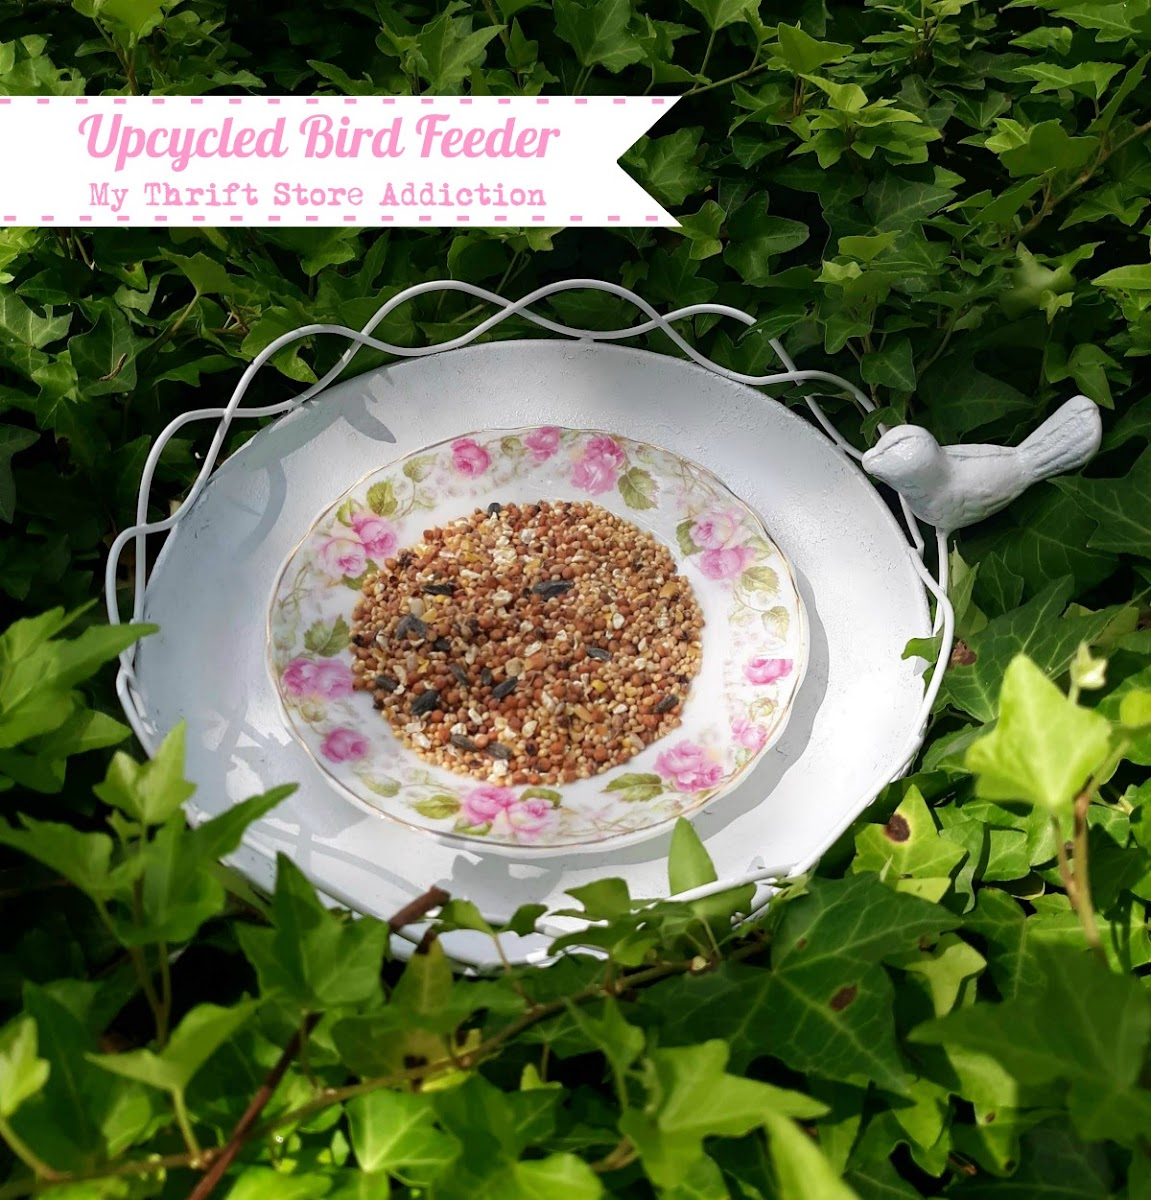 Upcycled yard sale bird feeder